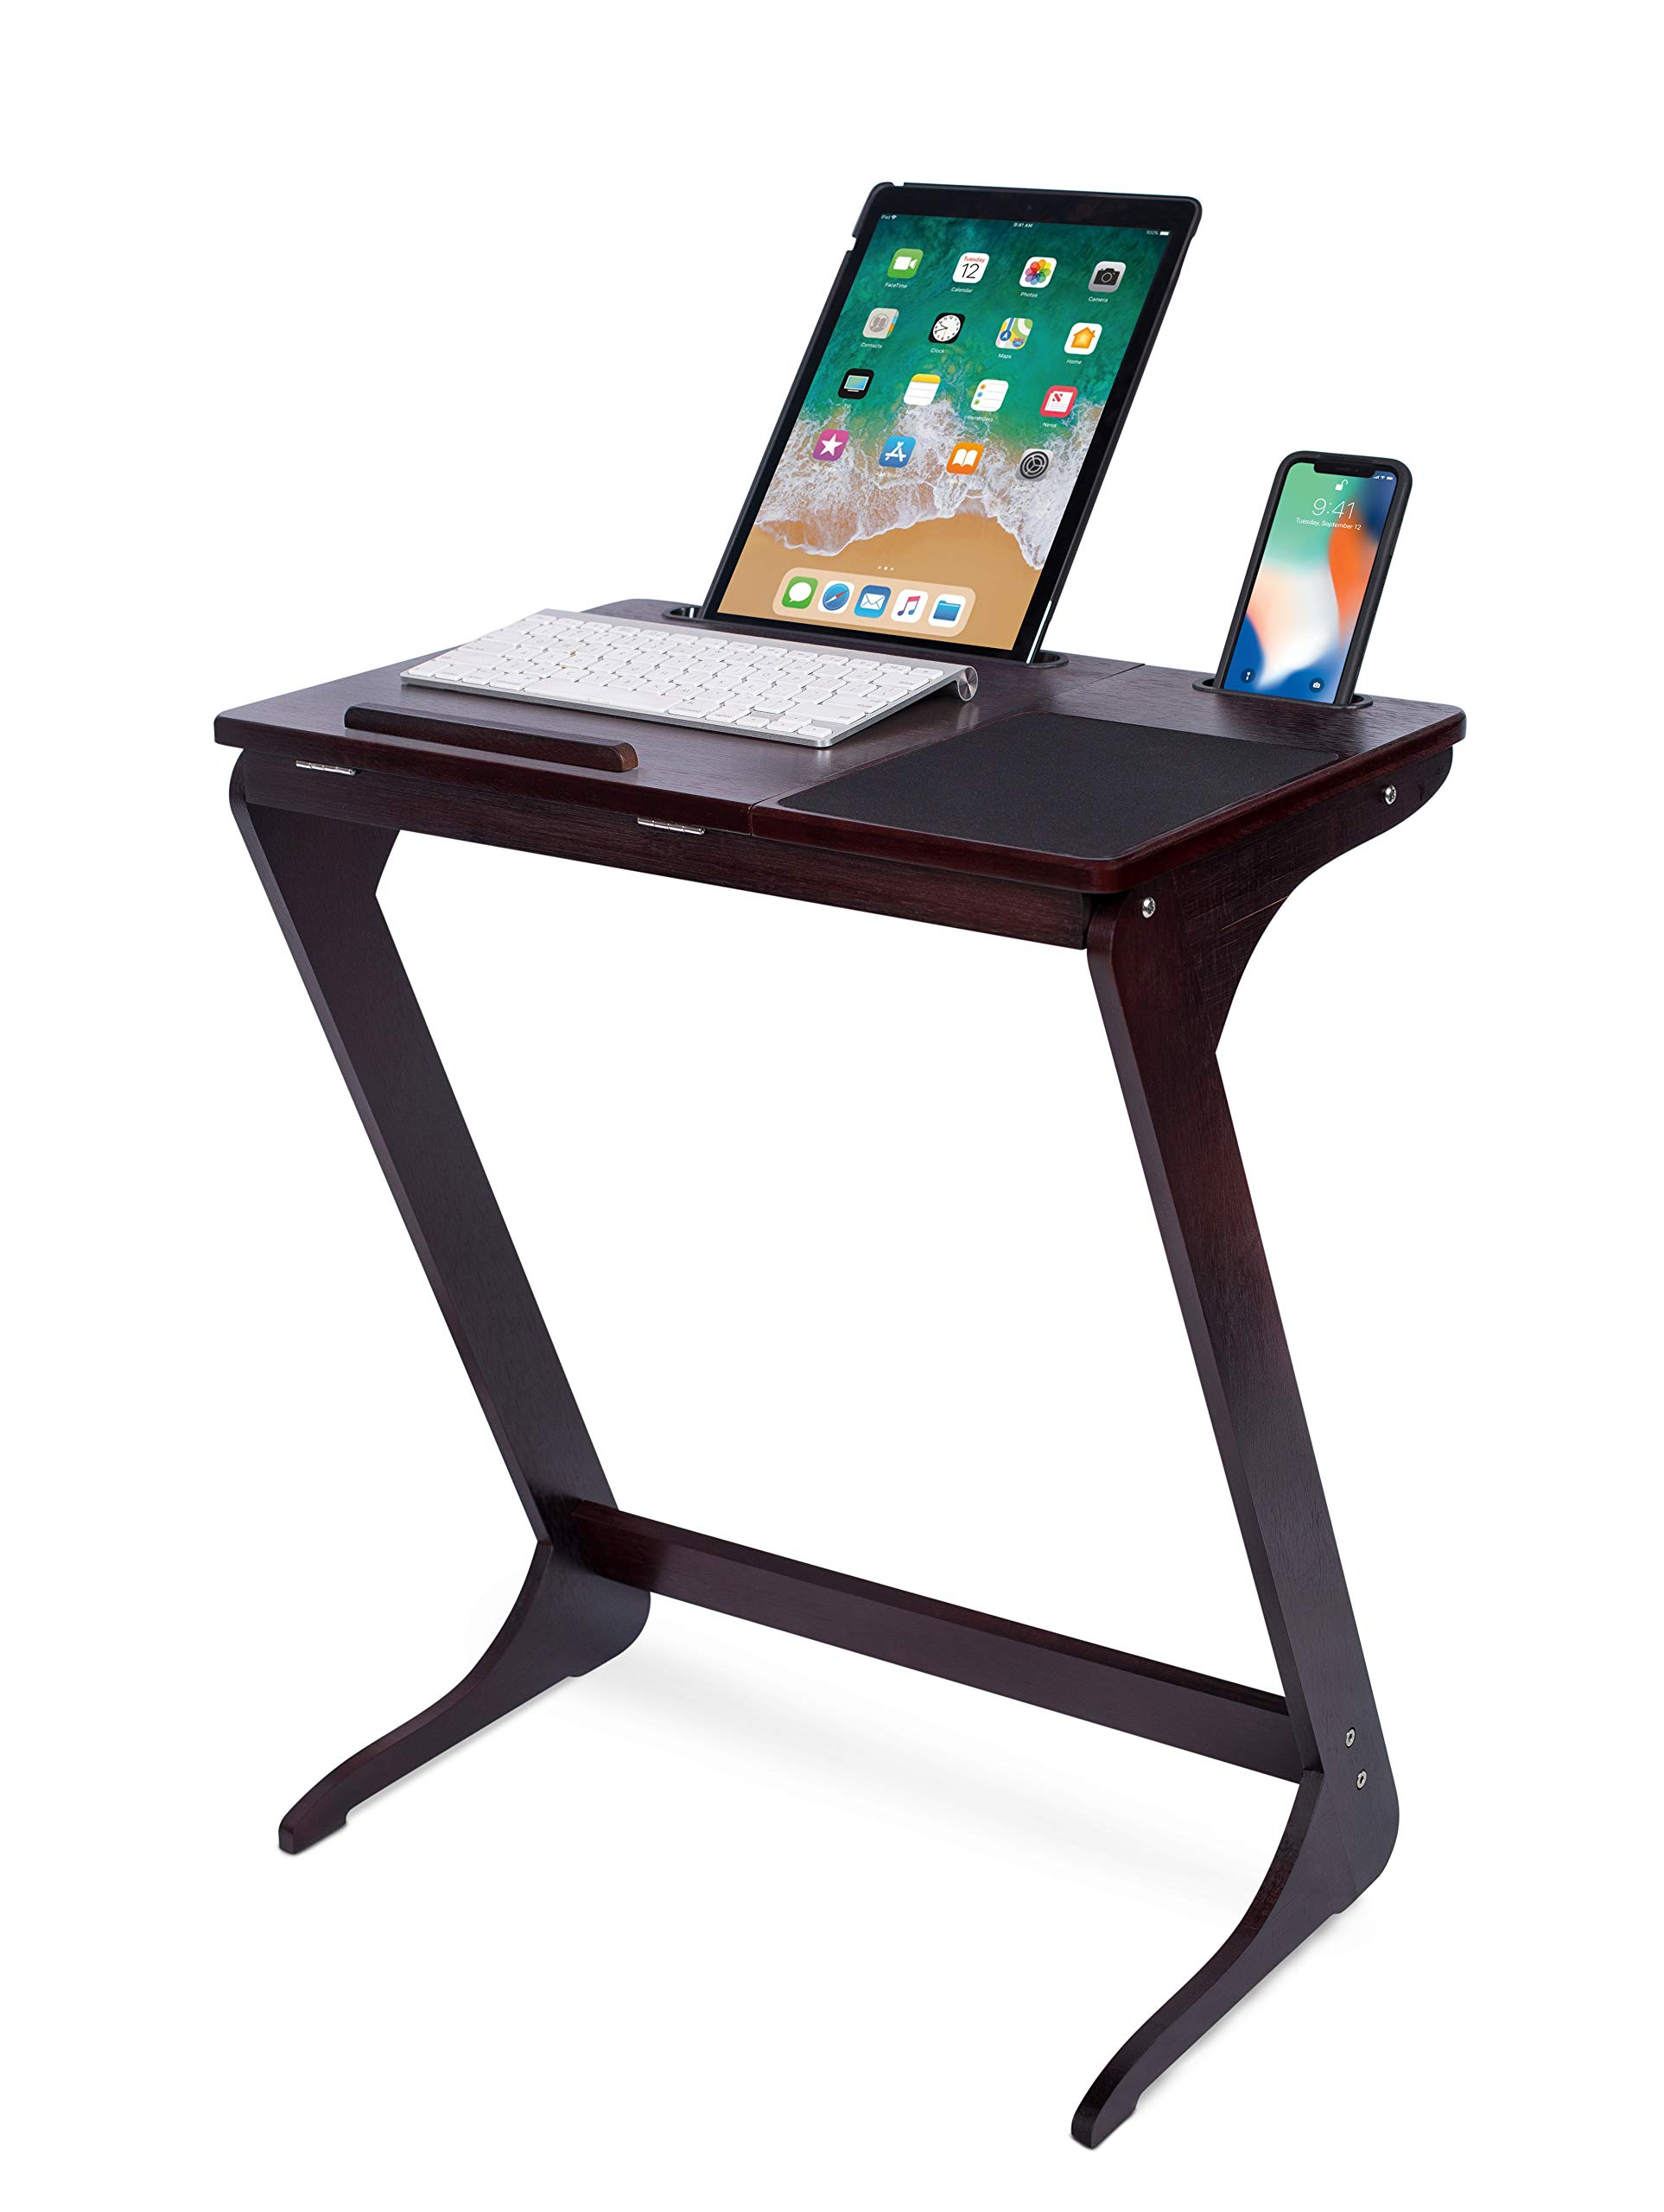 Sofia + Sam Sofa Side Table TV Tray with Tablet and Phone Slots | Wooden Z Legs | Couch Console Lapdesk | Adjustable Top Table | Laptop Stand | Small Breakfast Eating Food | Dinner Lunch Snack Reading